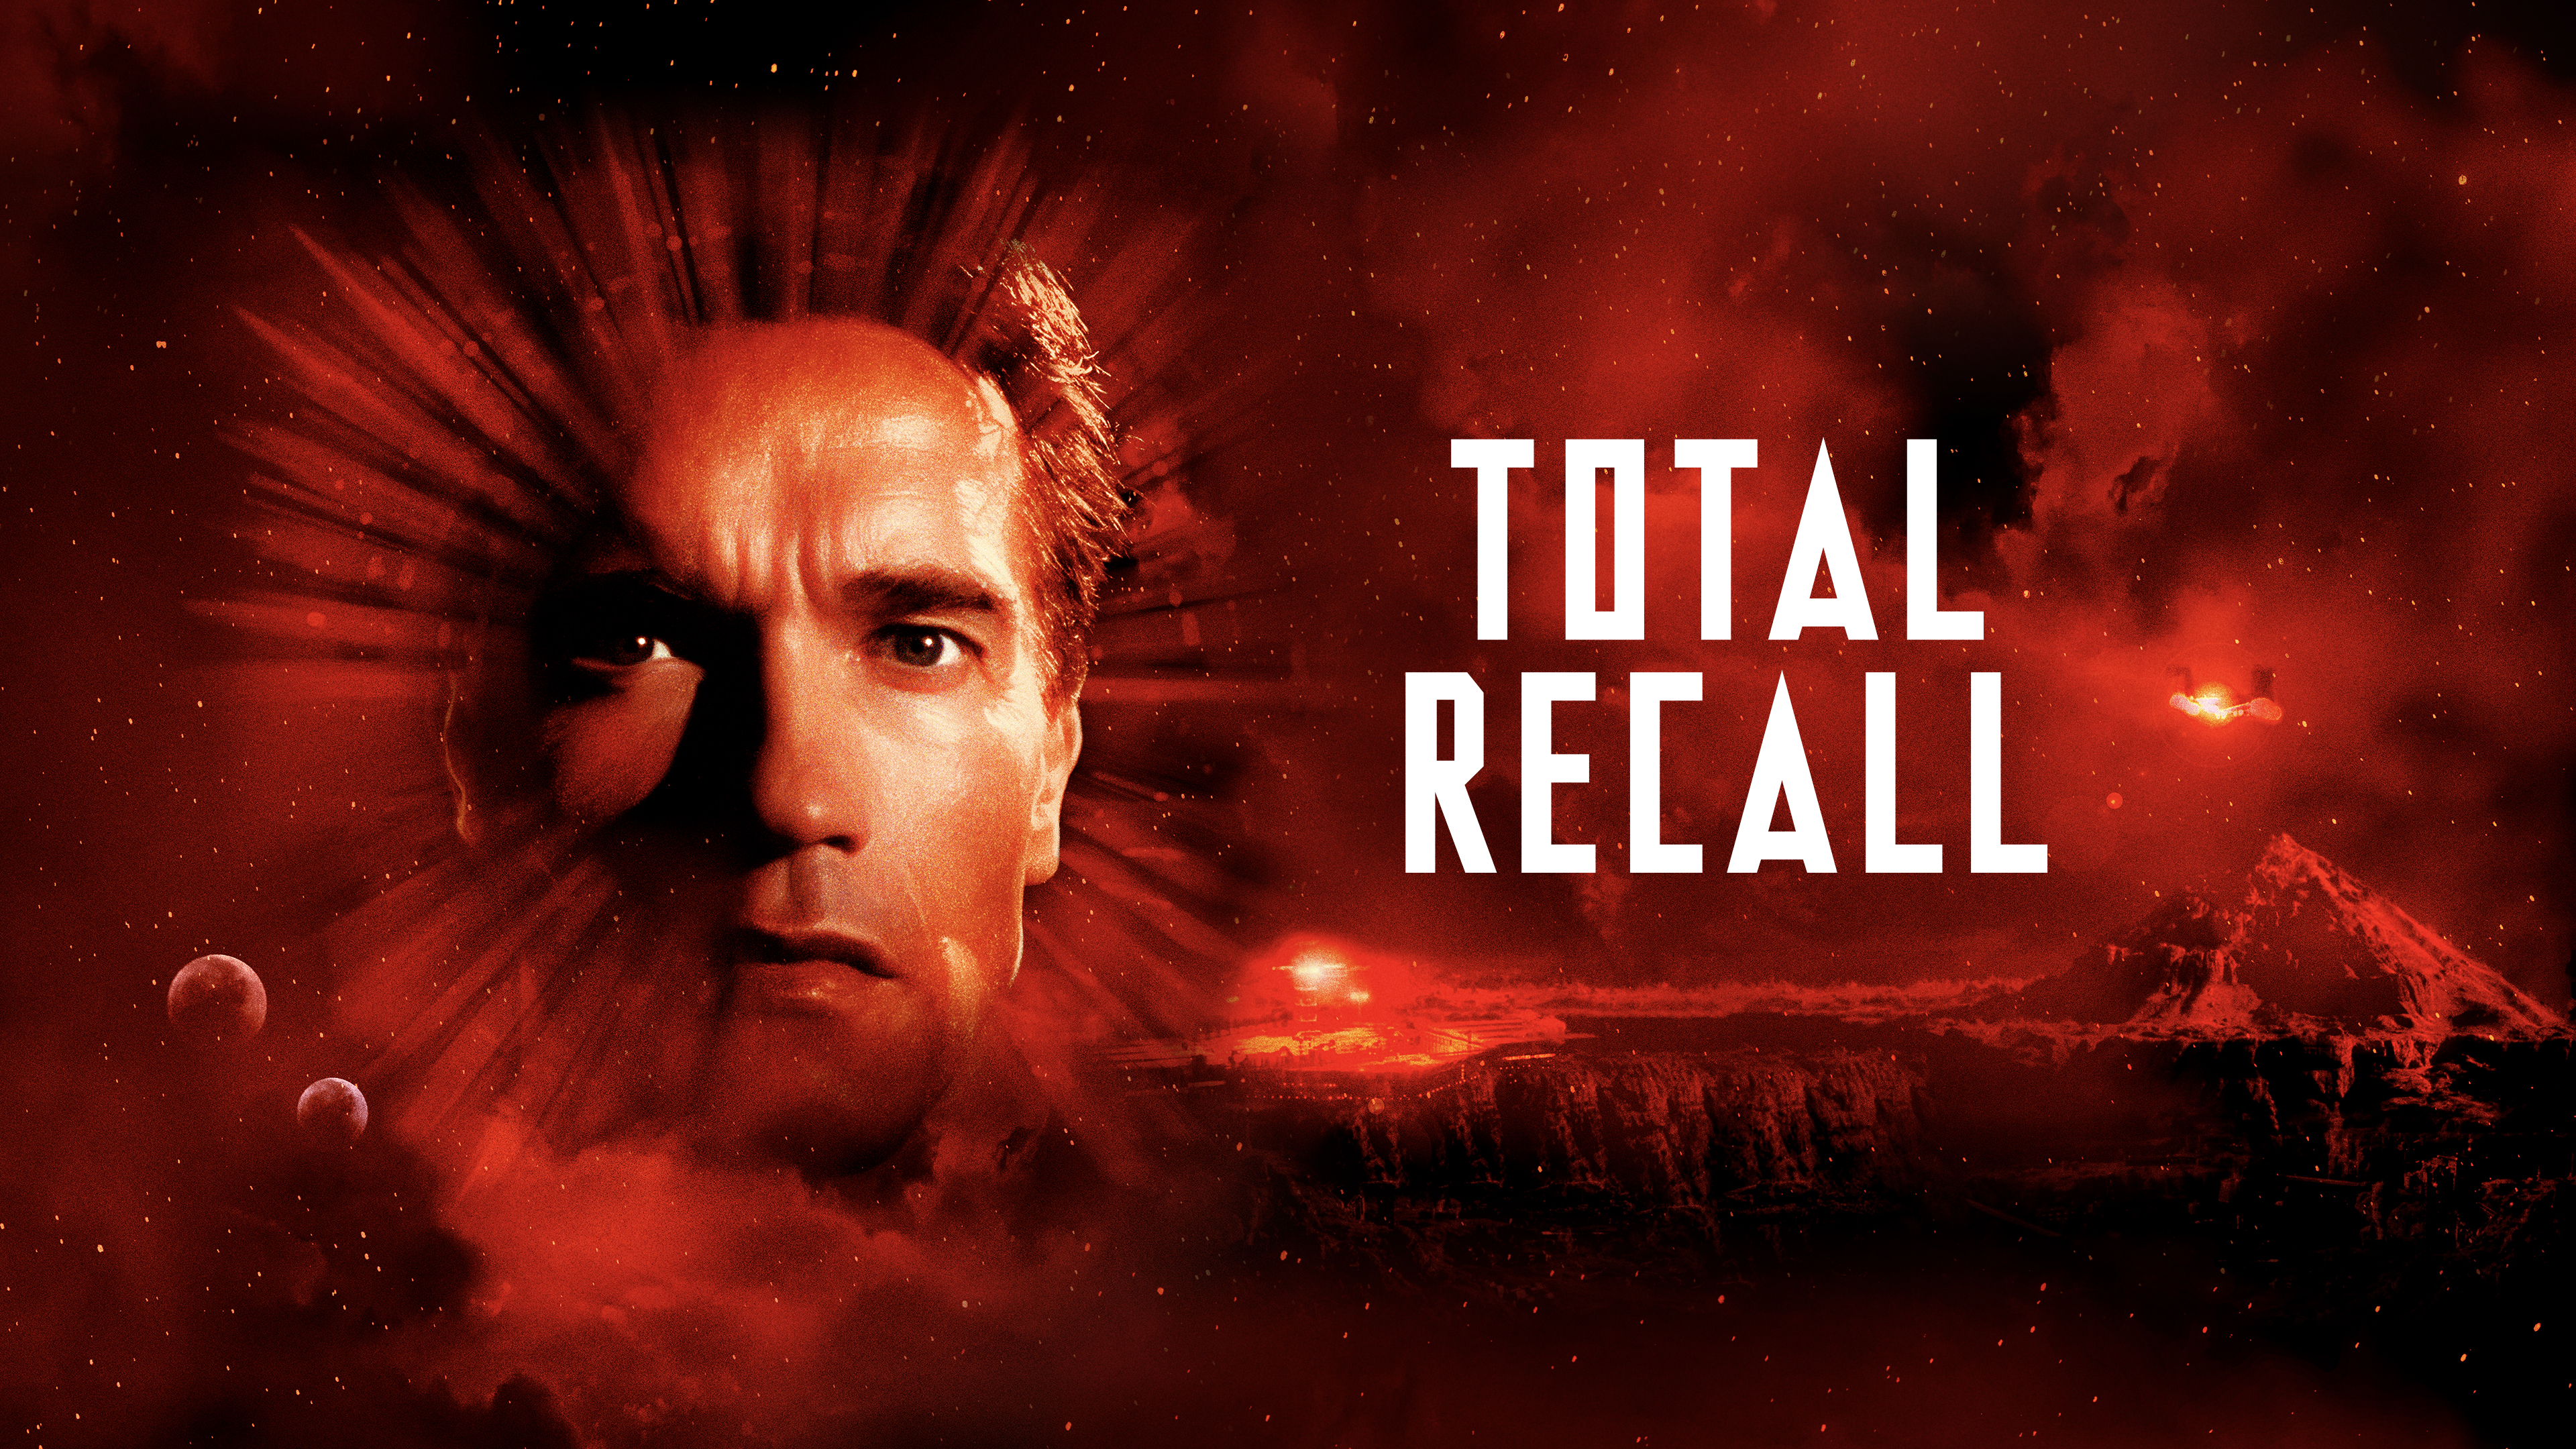 TOTAL RECALL (30TH ANNIVERSARY RESTORATION)